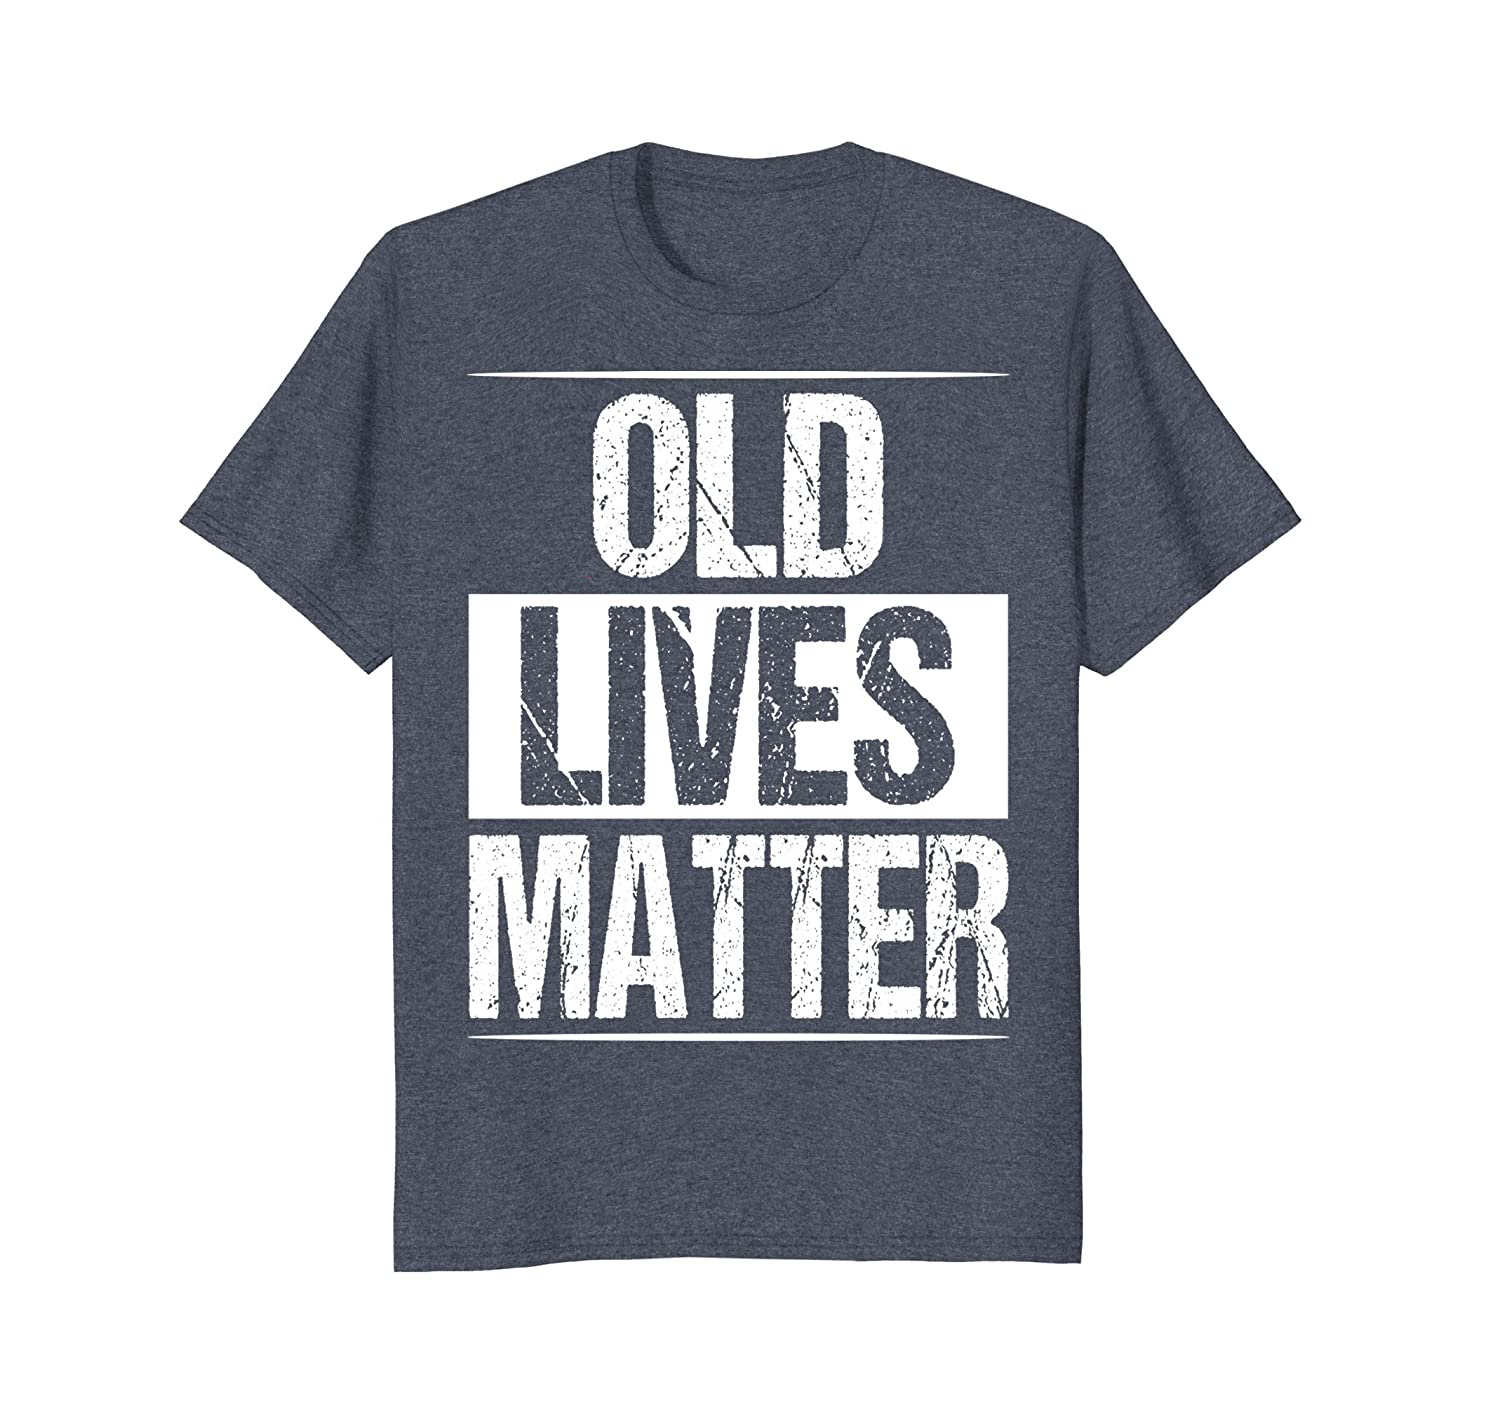 60th birthday gifts for men old lives matter shirt 50th dad alottee